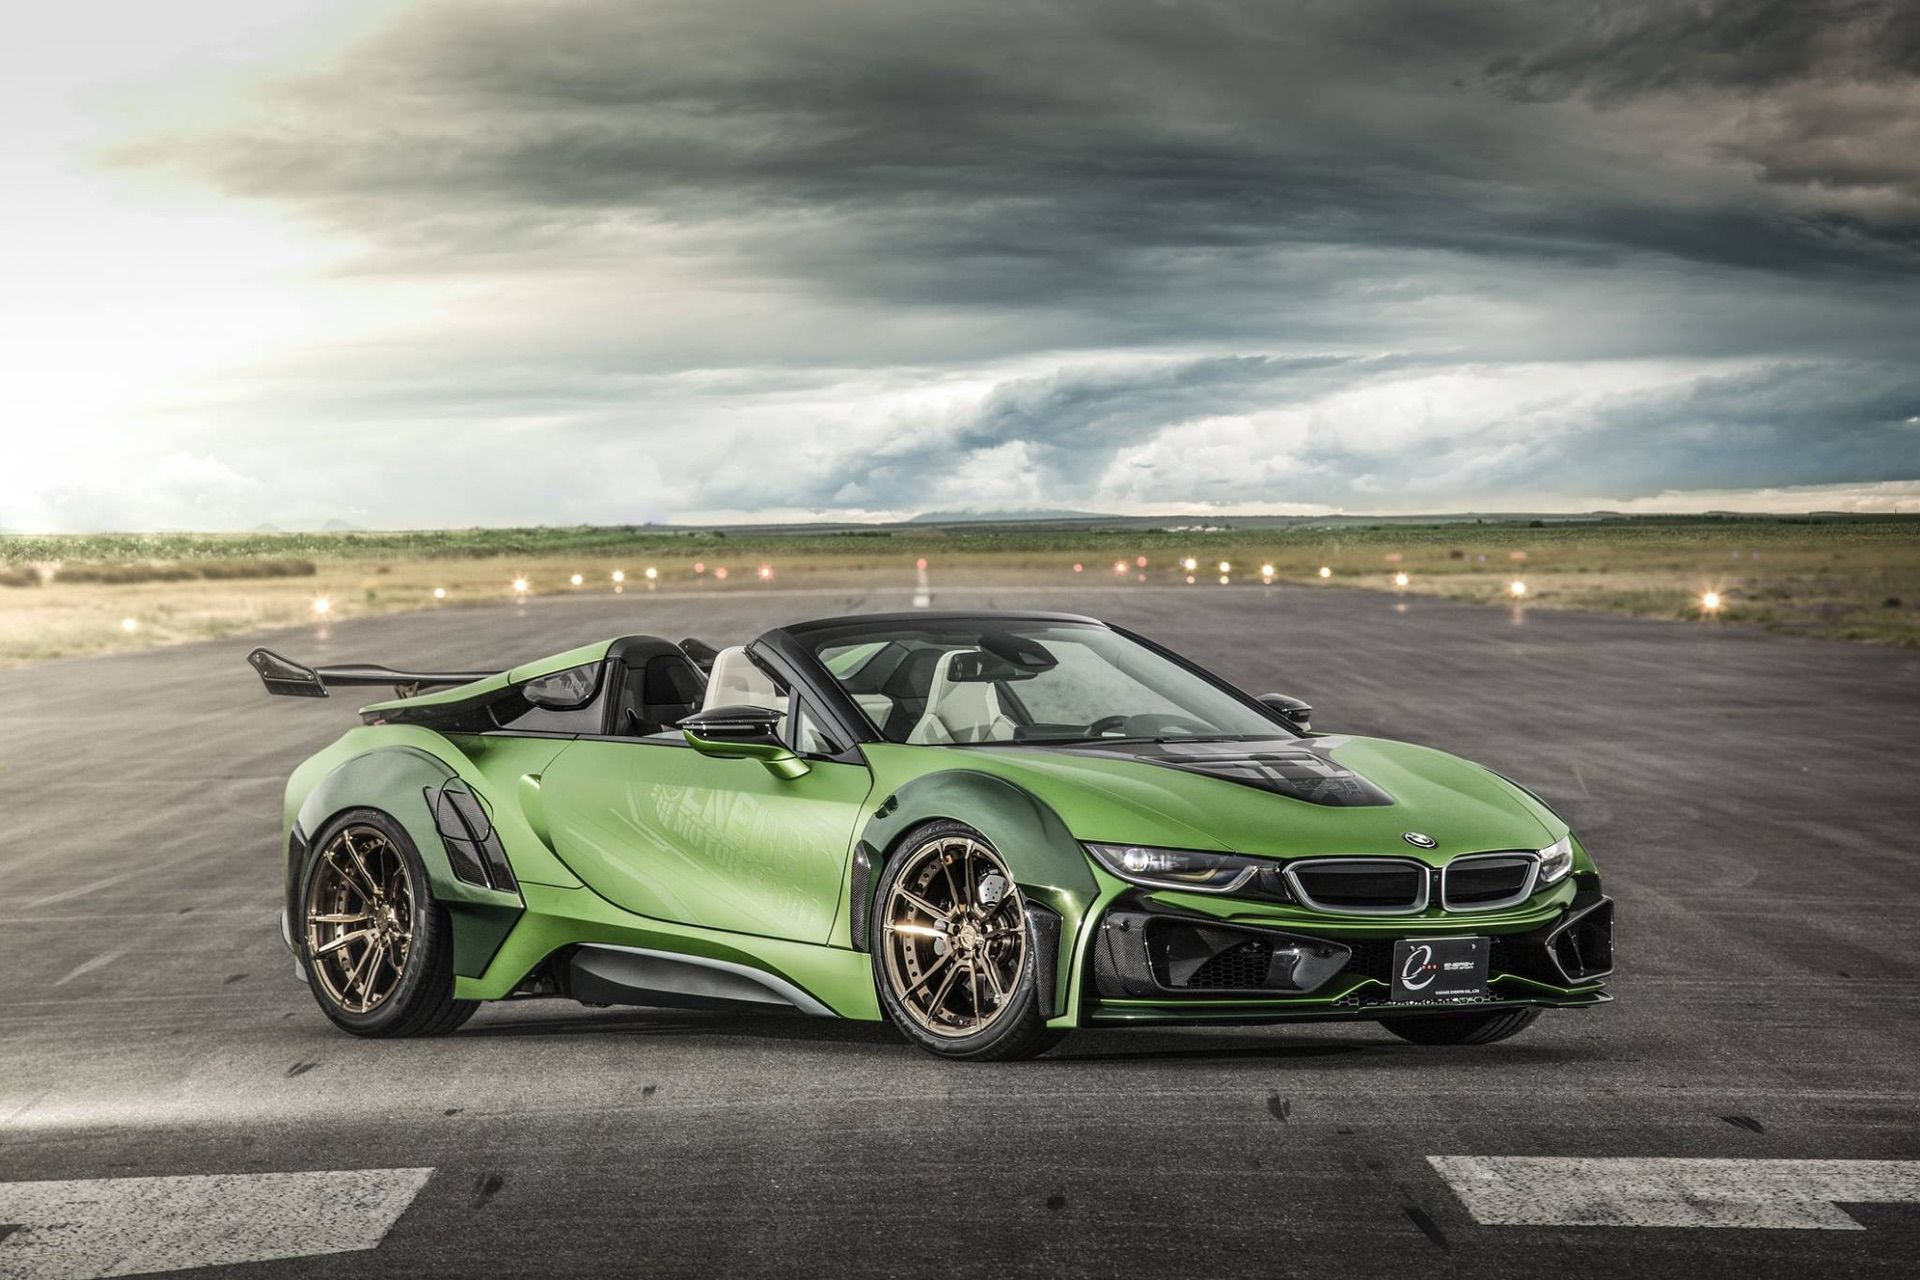 BMW i8 Roadster Energy Motors Sport green color 12